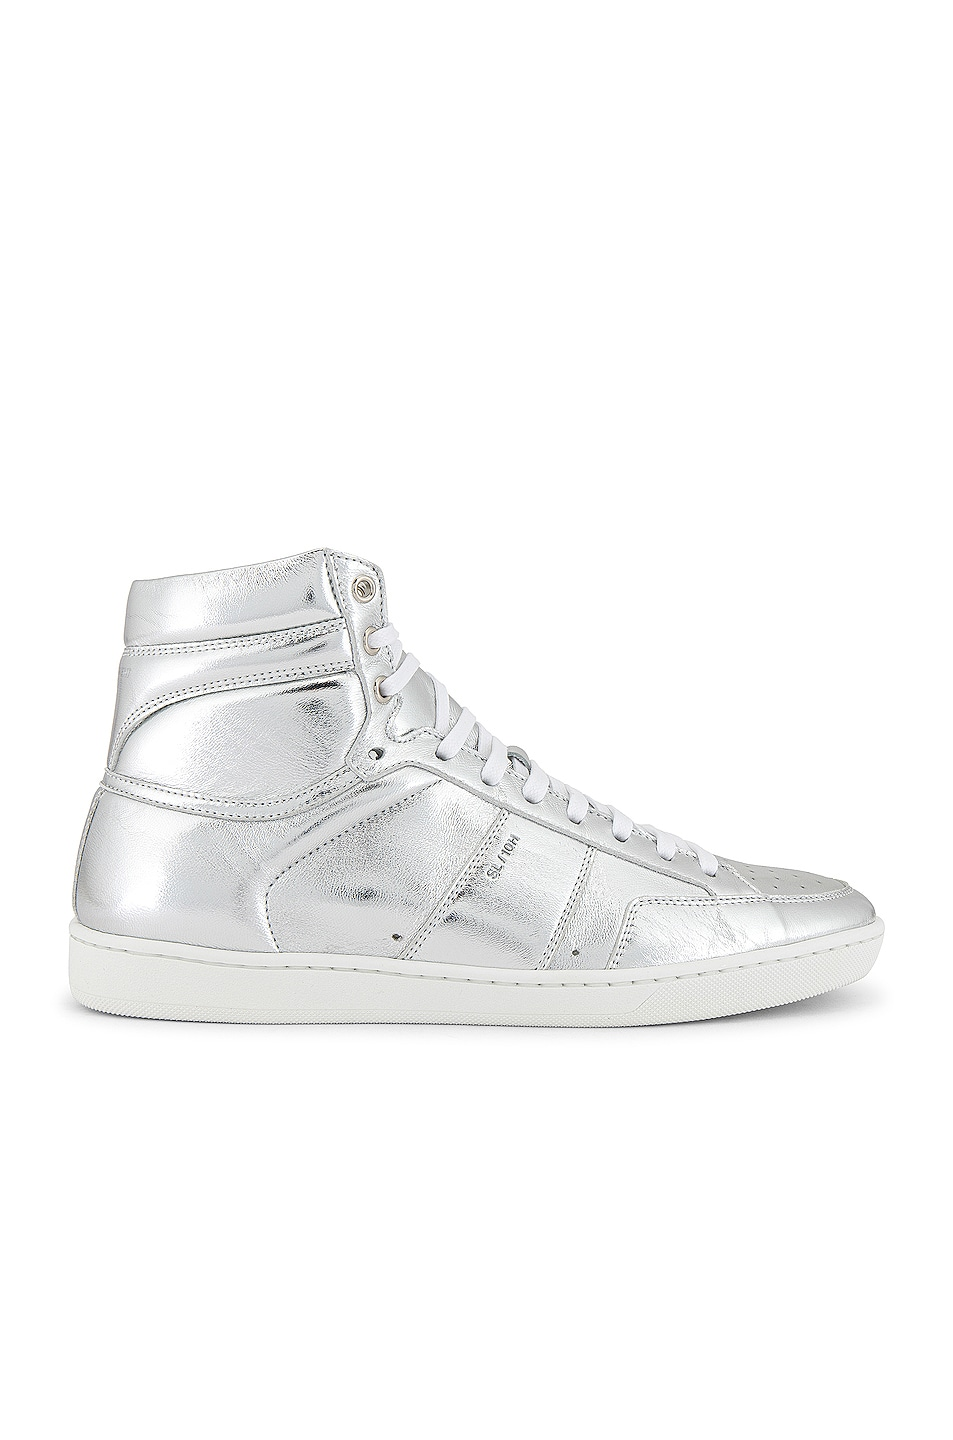 Image 2 of Saint Laurent Leather Up Sneaker in Silver